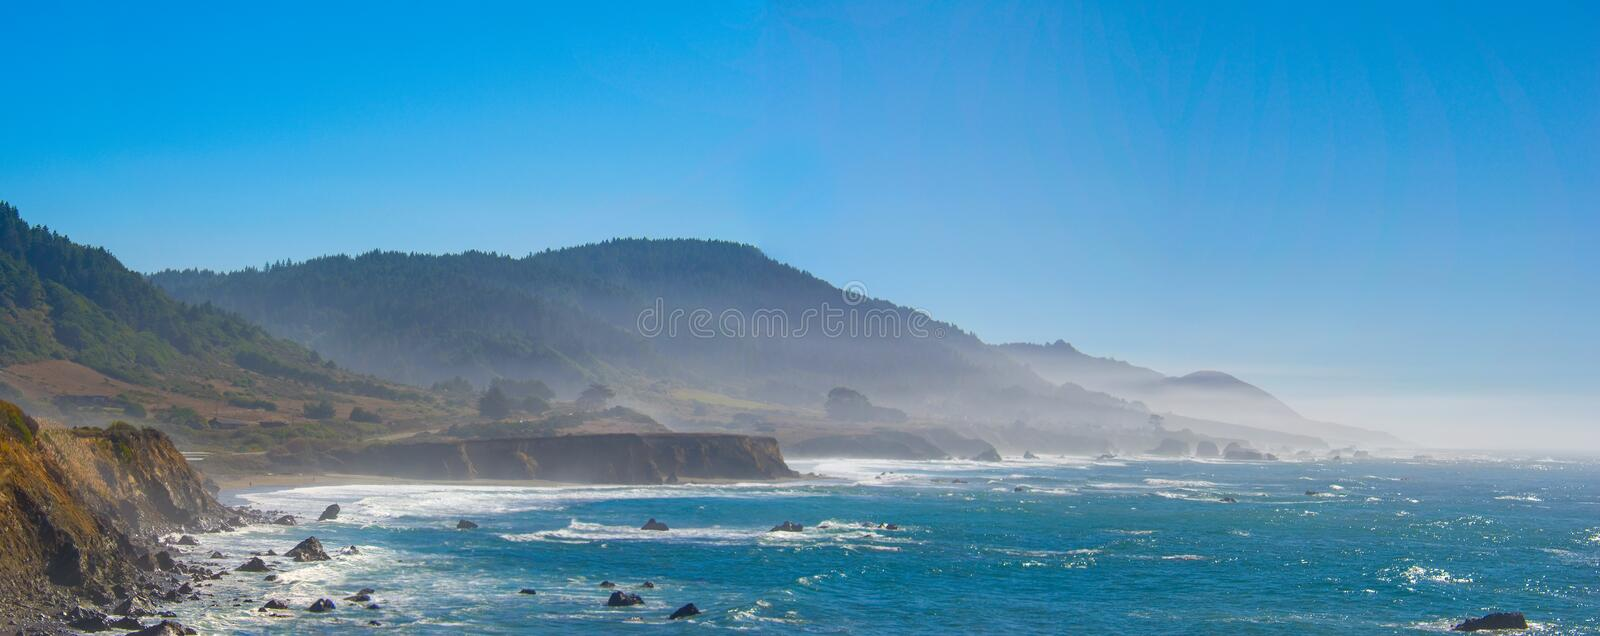 Promontoires la Californie du nord de Mendocino photo stock